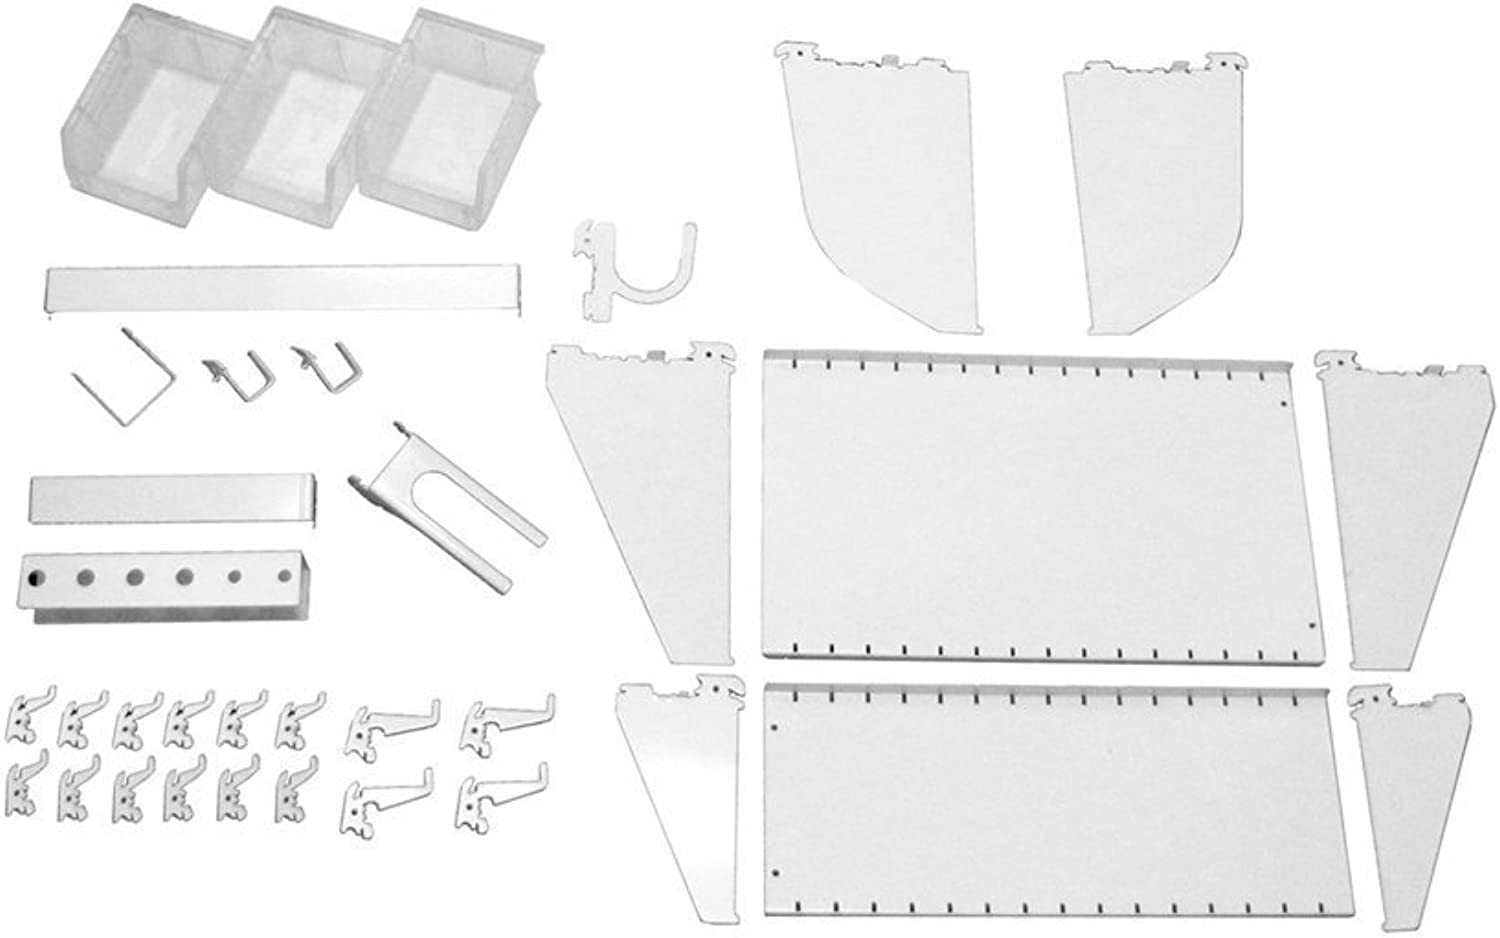 Wall Control Slotted Tool Board Workstation Accessory Kit Pegboard and Slotted Tool Board – White